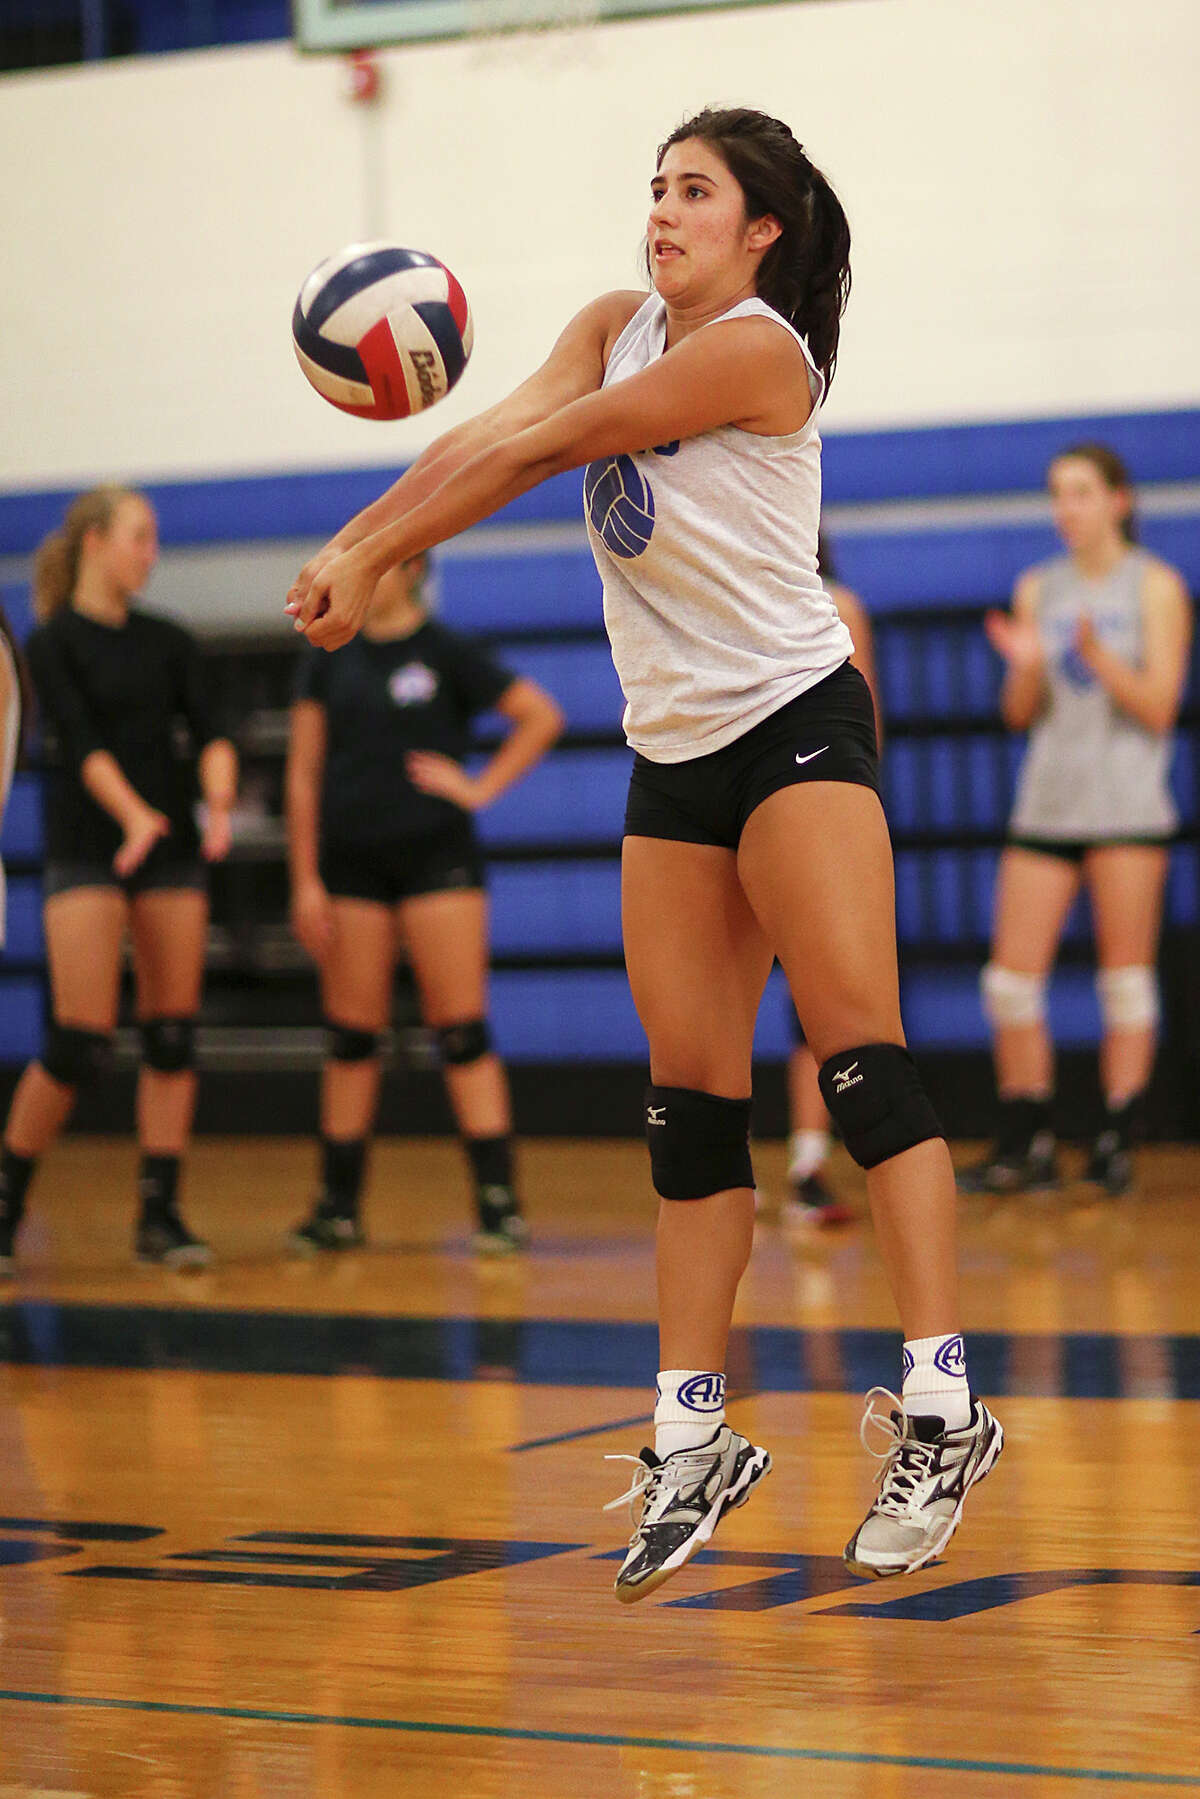 Alamo Heights High School volleyball team member Hannah Lackey goes through a drill during the first day of practice at the Muledome, Monday, August 3, 2015.